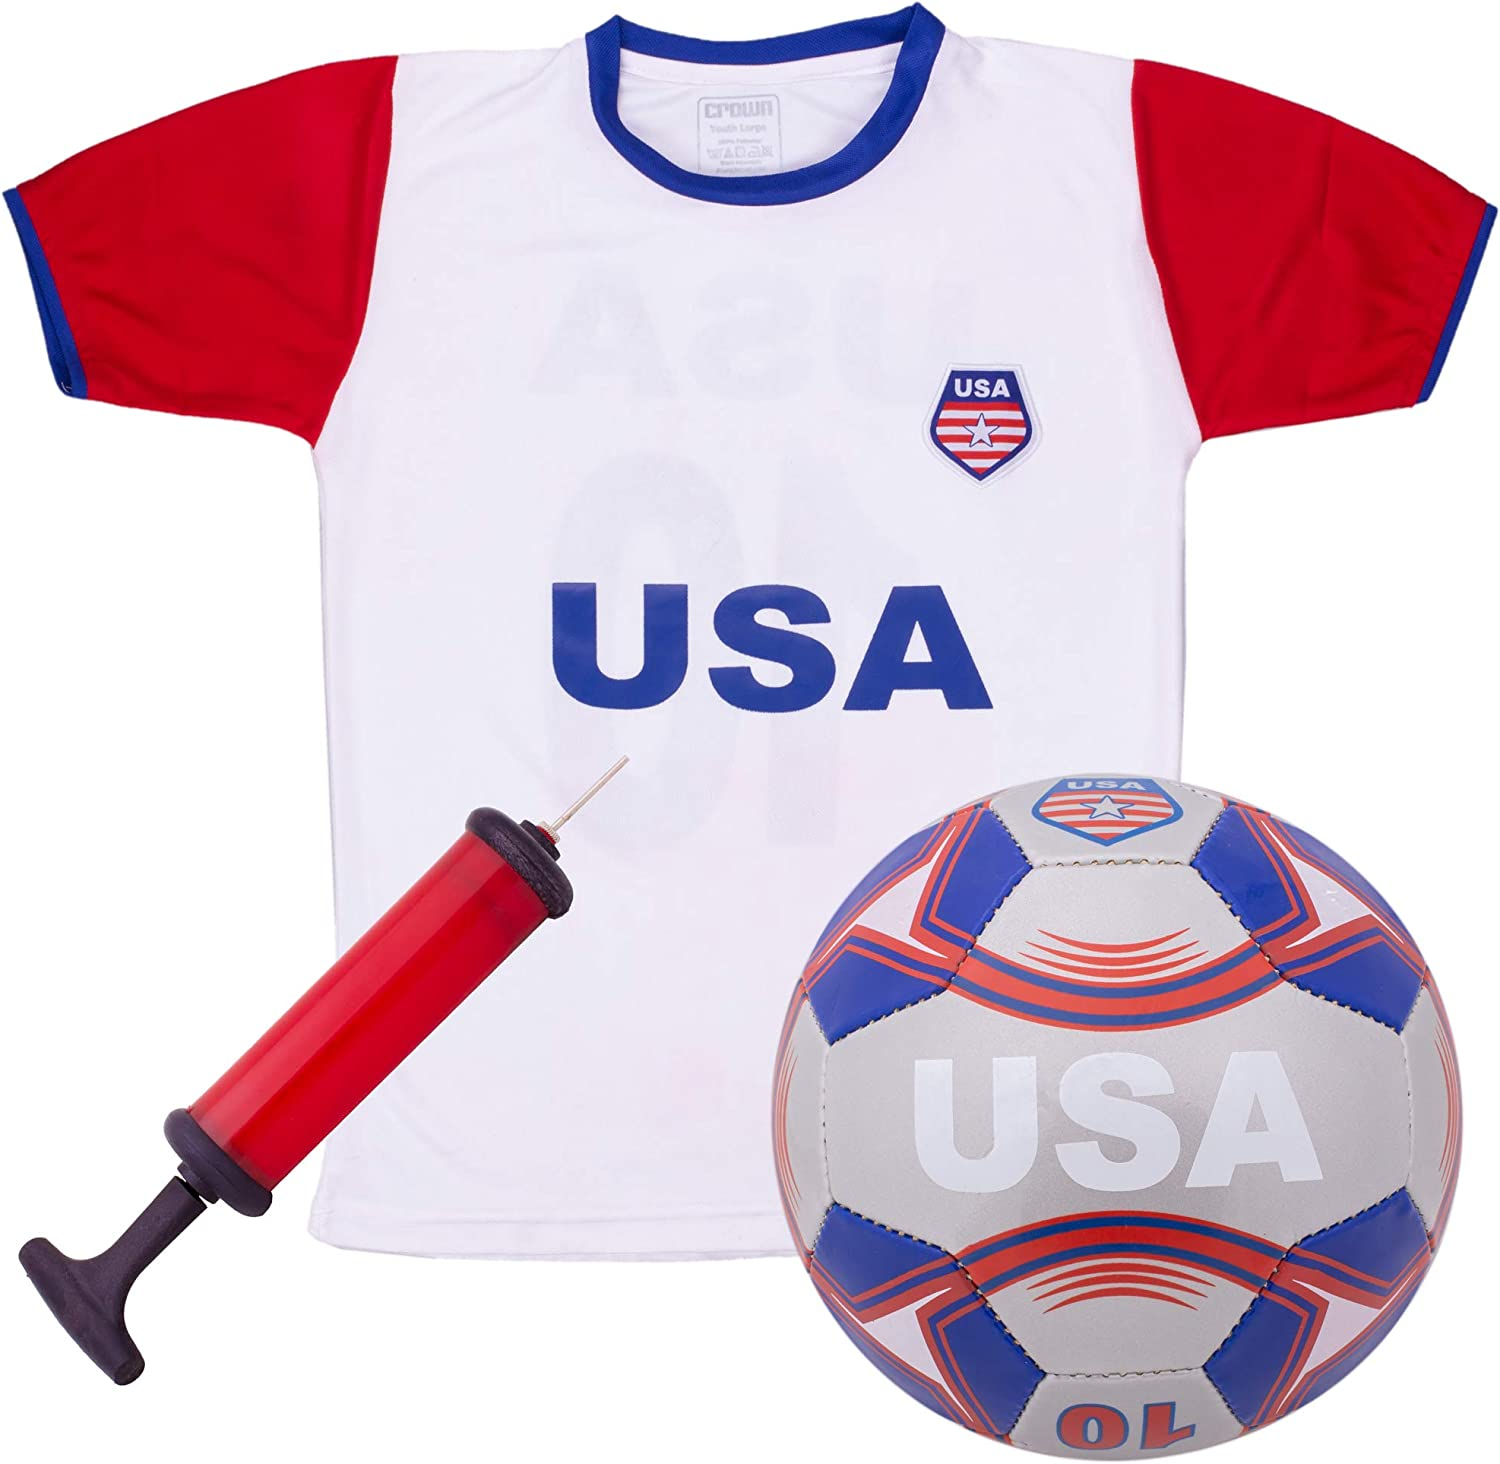 INC Team USA World Cup 2018 United States Youth Soccer Jersey Pick Boys OR Girls ICON SPORTS GROUP Shorts Soccer Ball